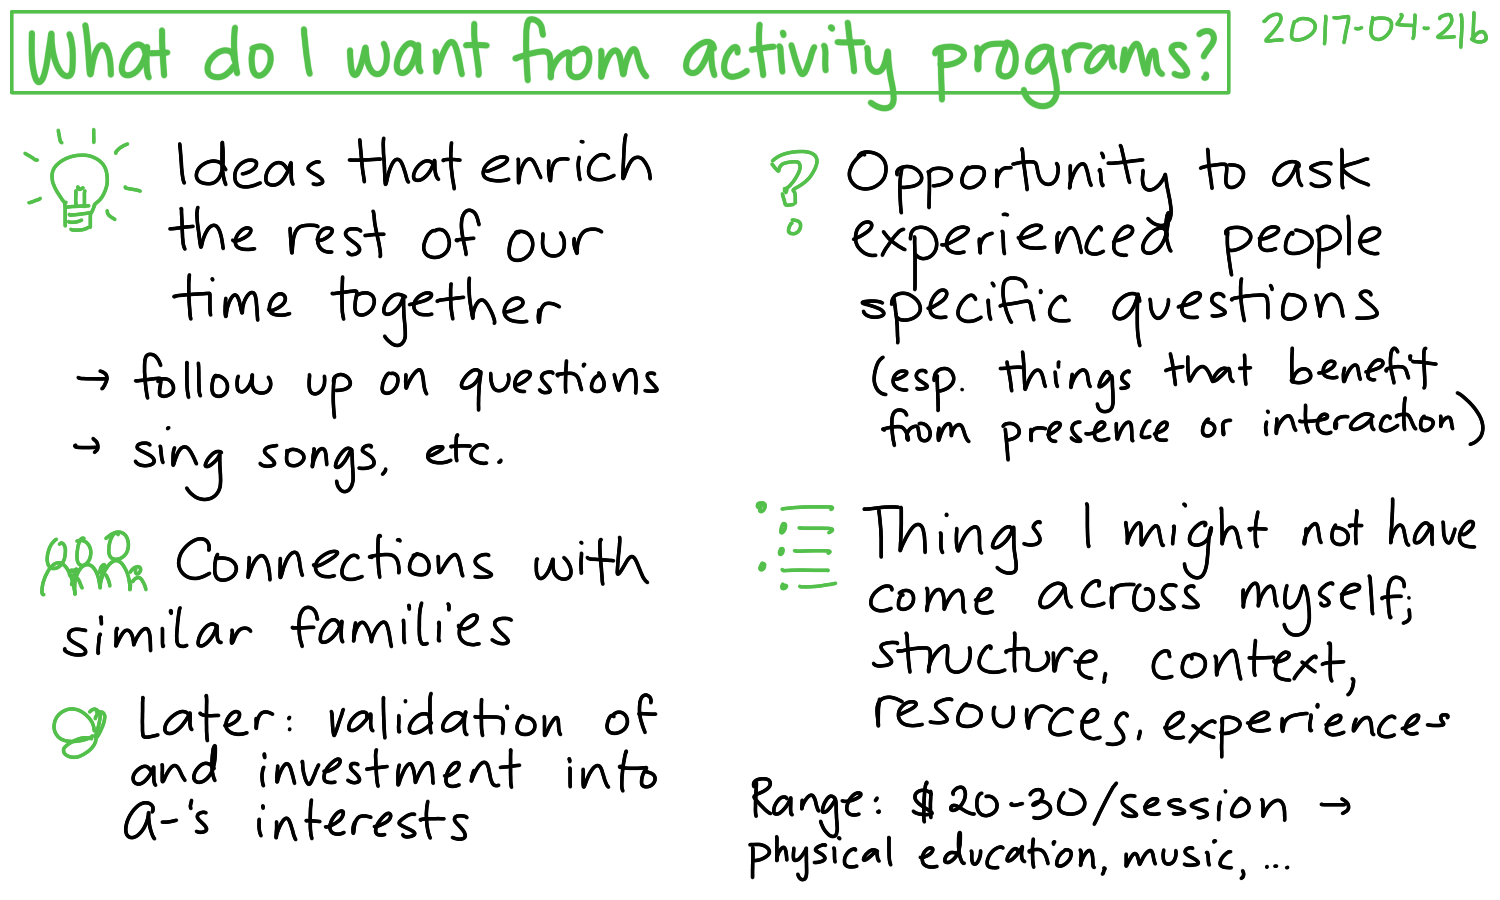 2017-04-21b What do I want from activity programs #parenting #activities #classes.png